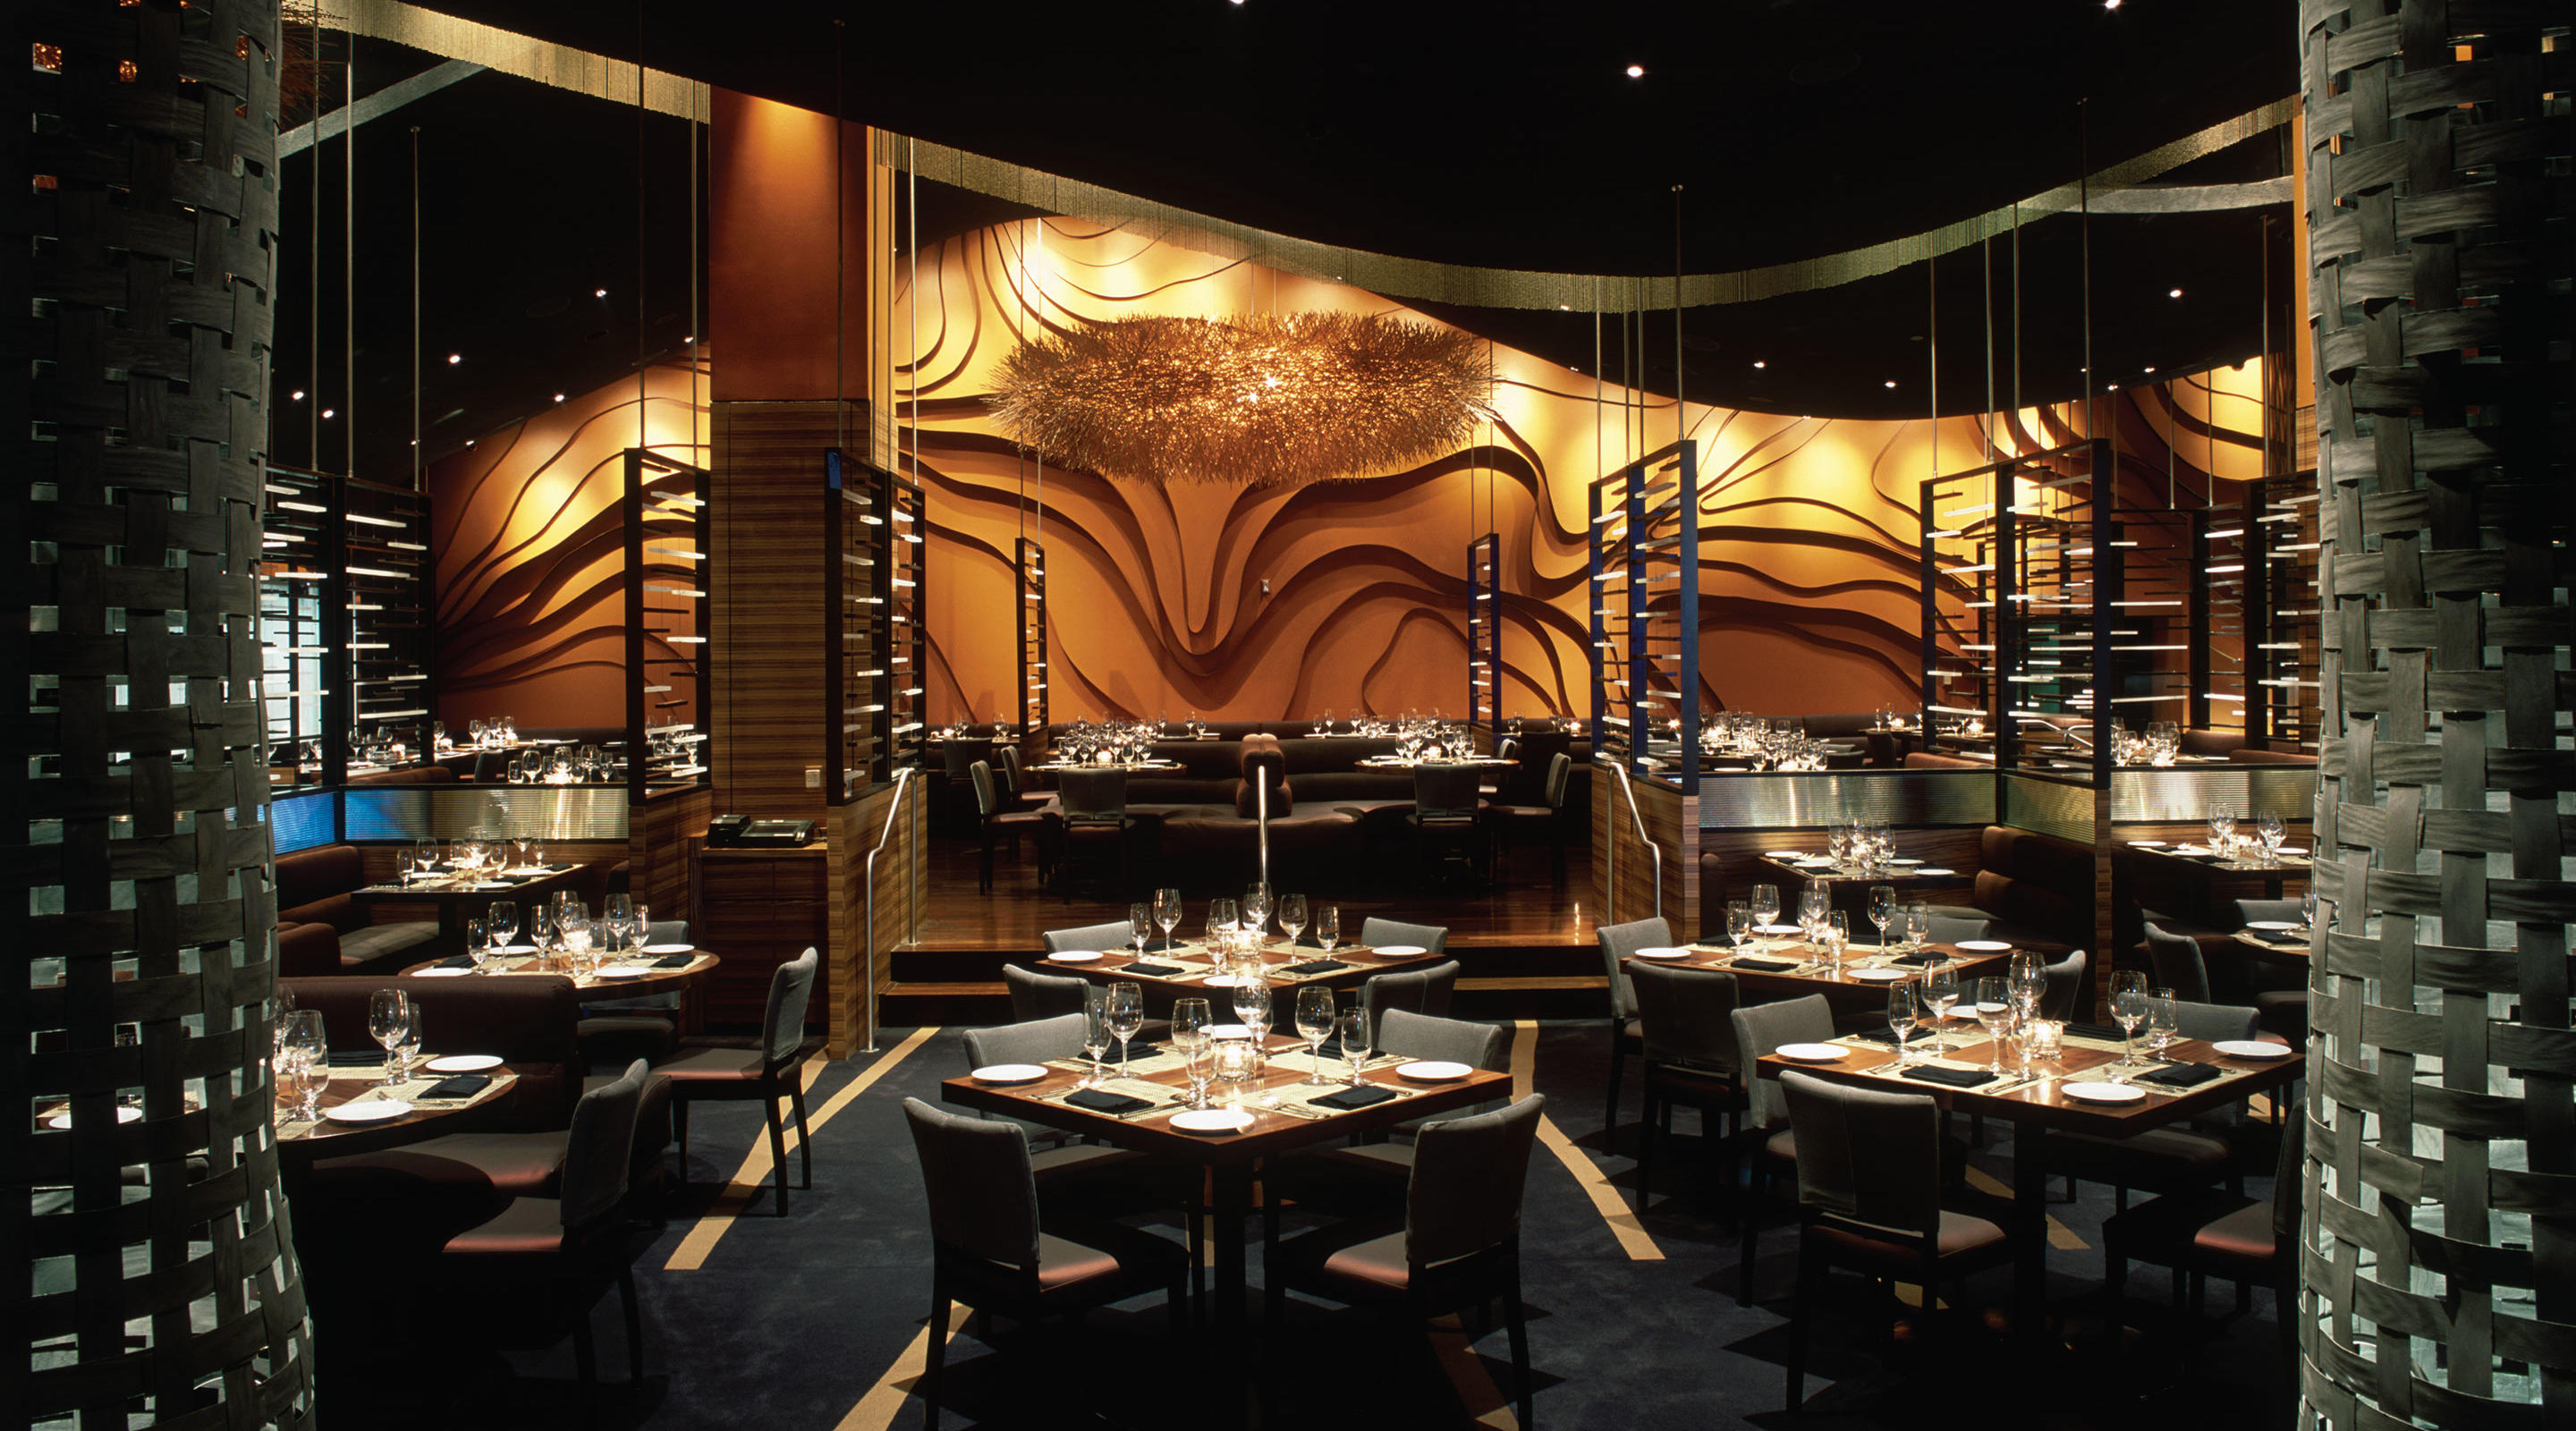 Italian Restaurant  FiAMMA at MGM Grand  MGM Resorts